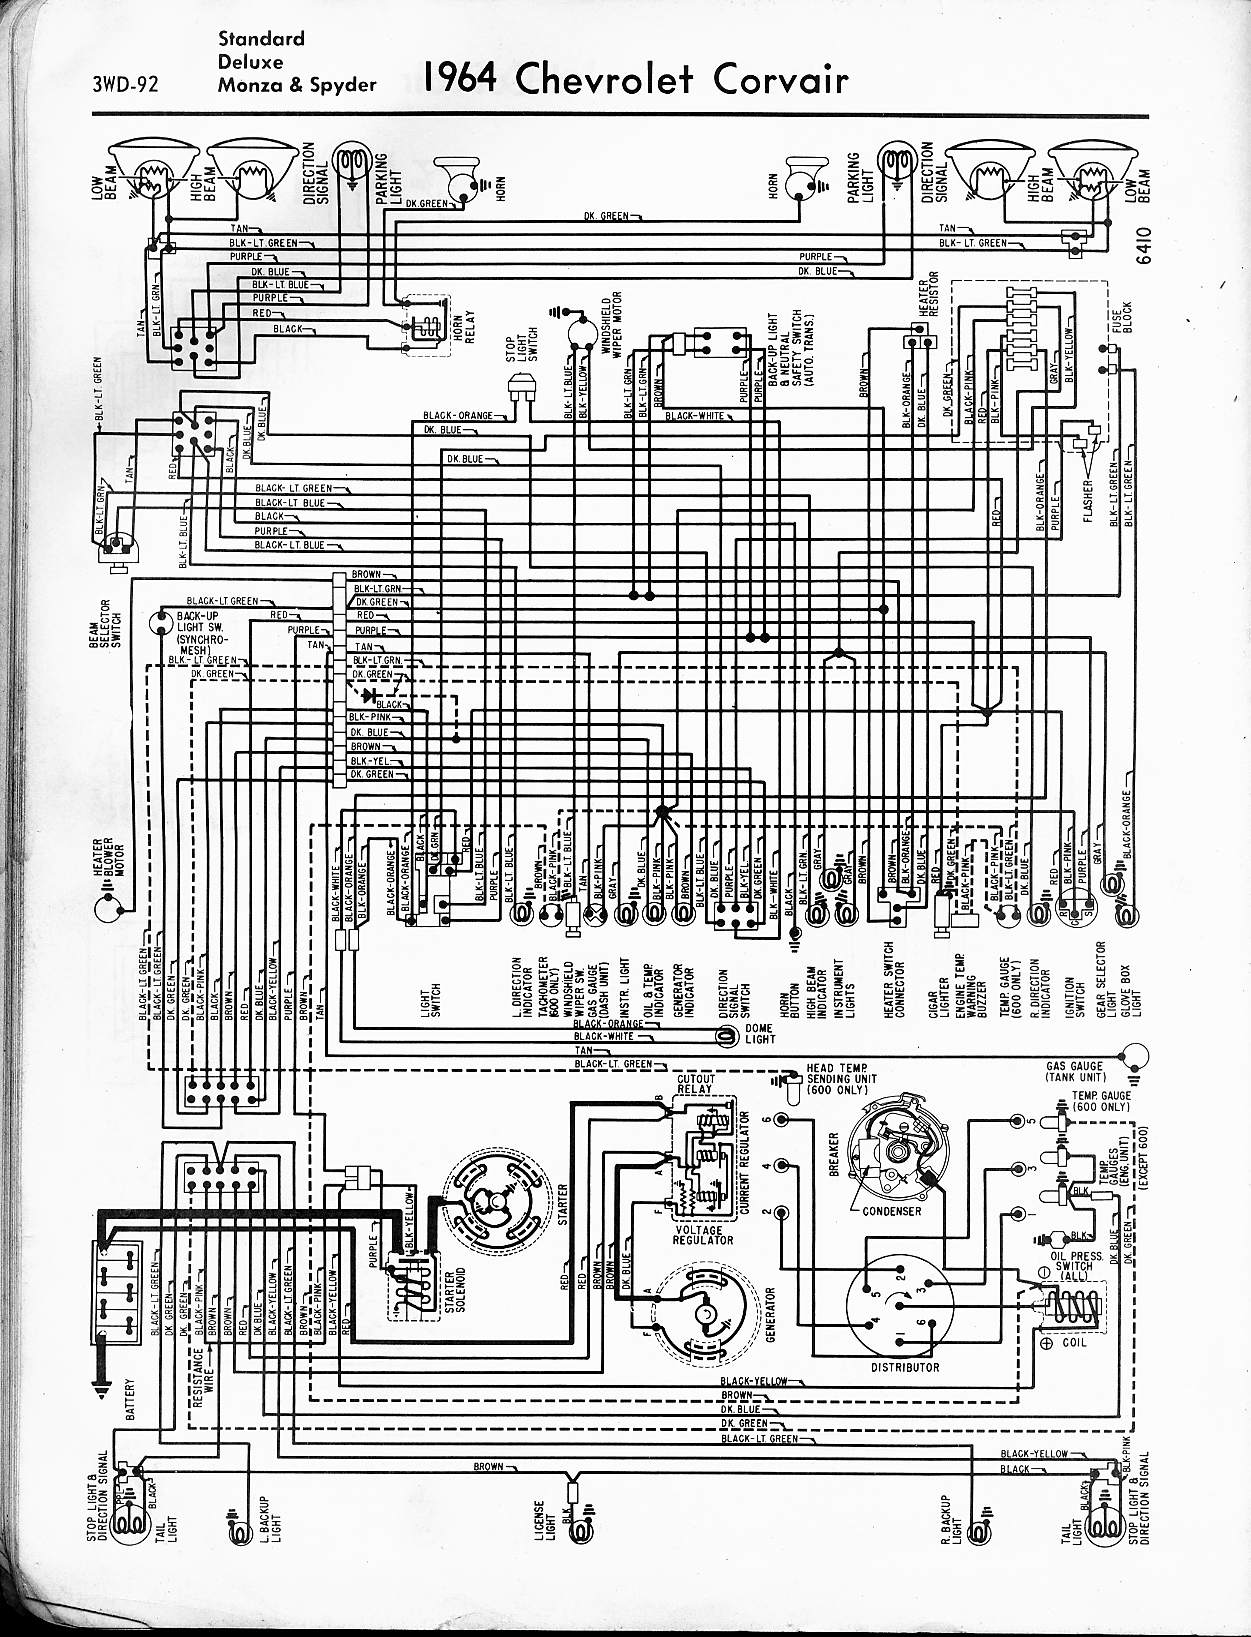 1964 Malibu Wiring Diagram Internal Diagrams Glastron 57 65 Chevy Skeeter Corvair Std Deluxe Monza